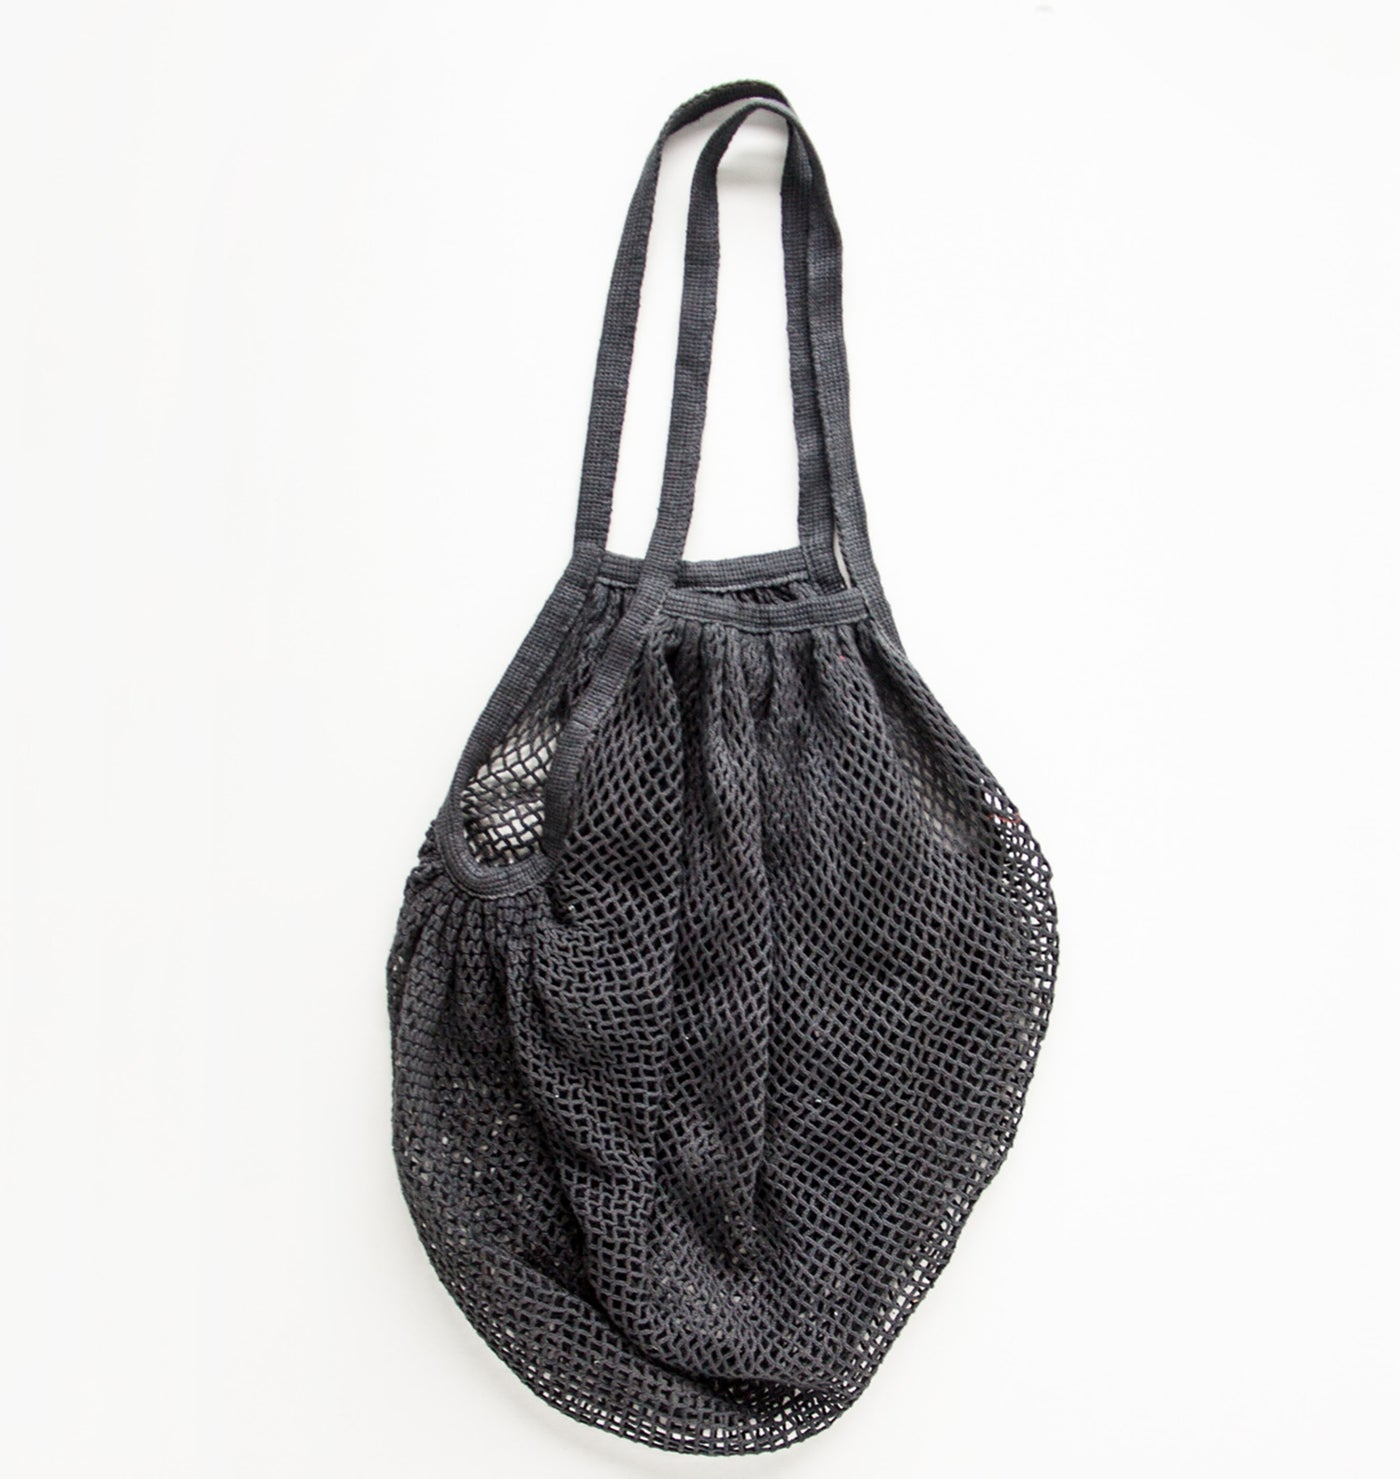 Fisherman's bag - Dark grey - Urban Nature Culture